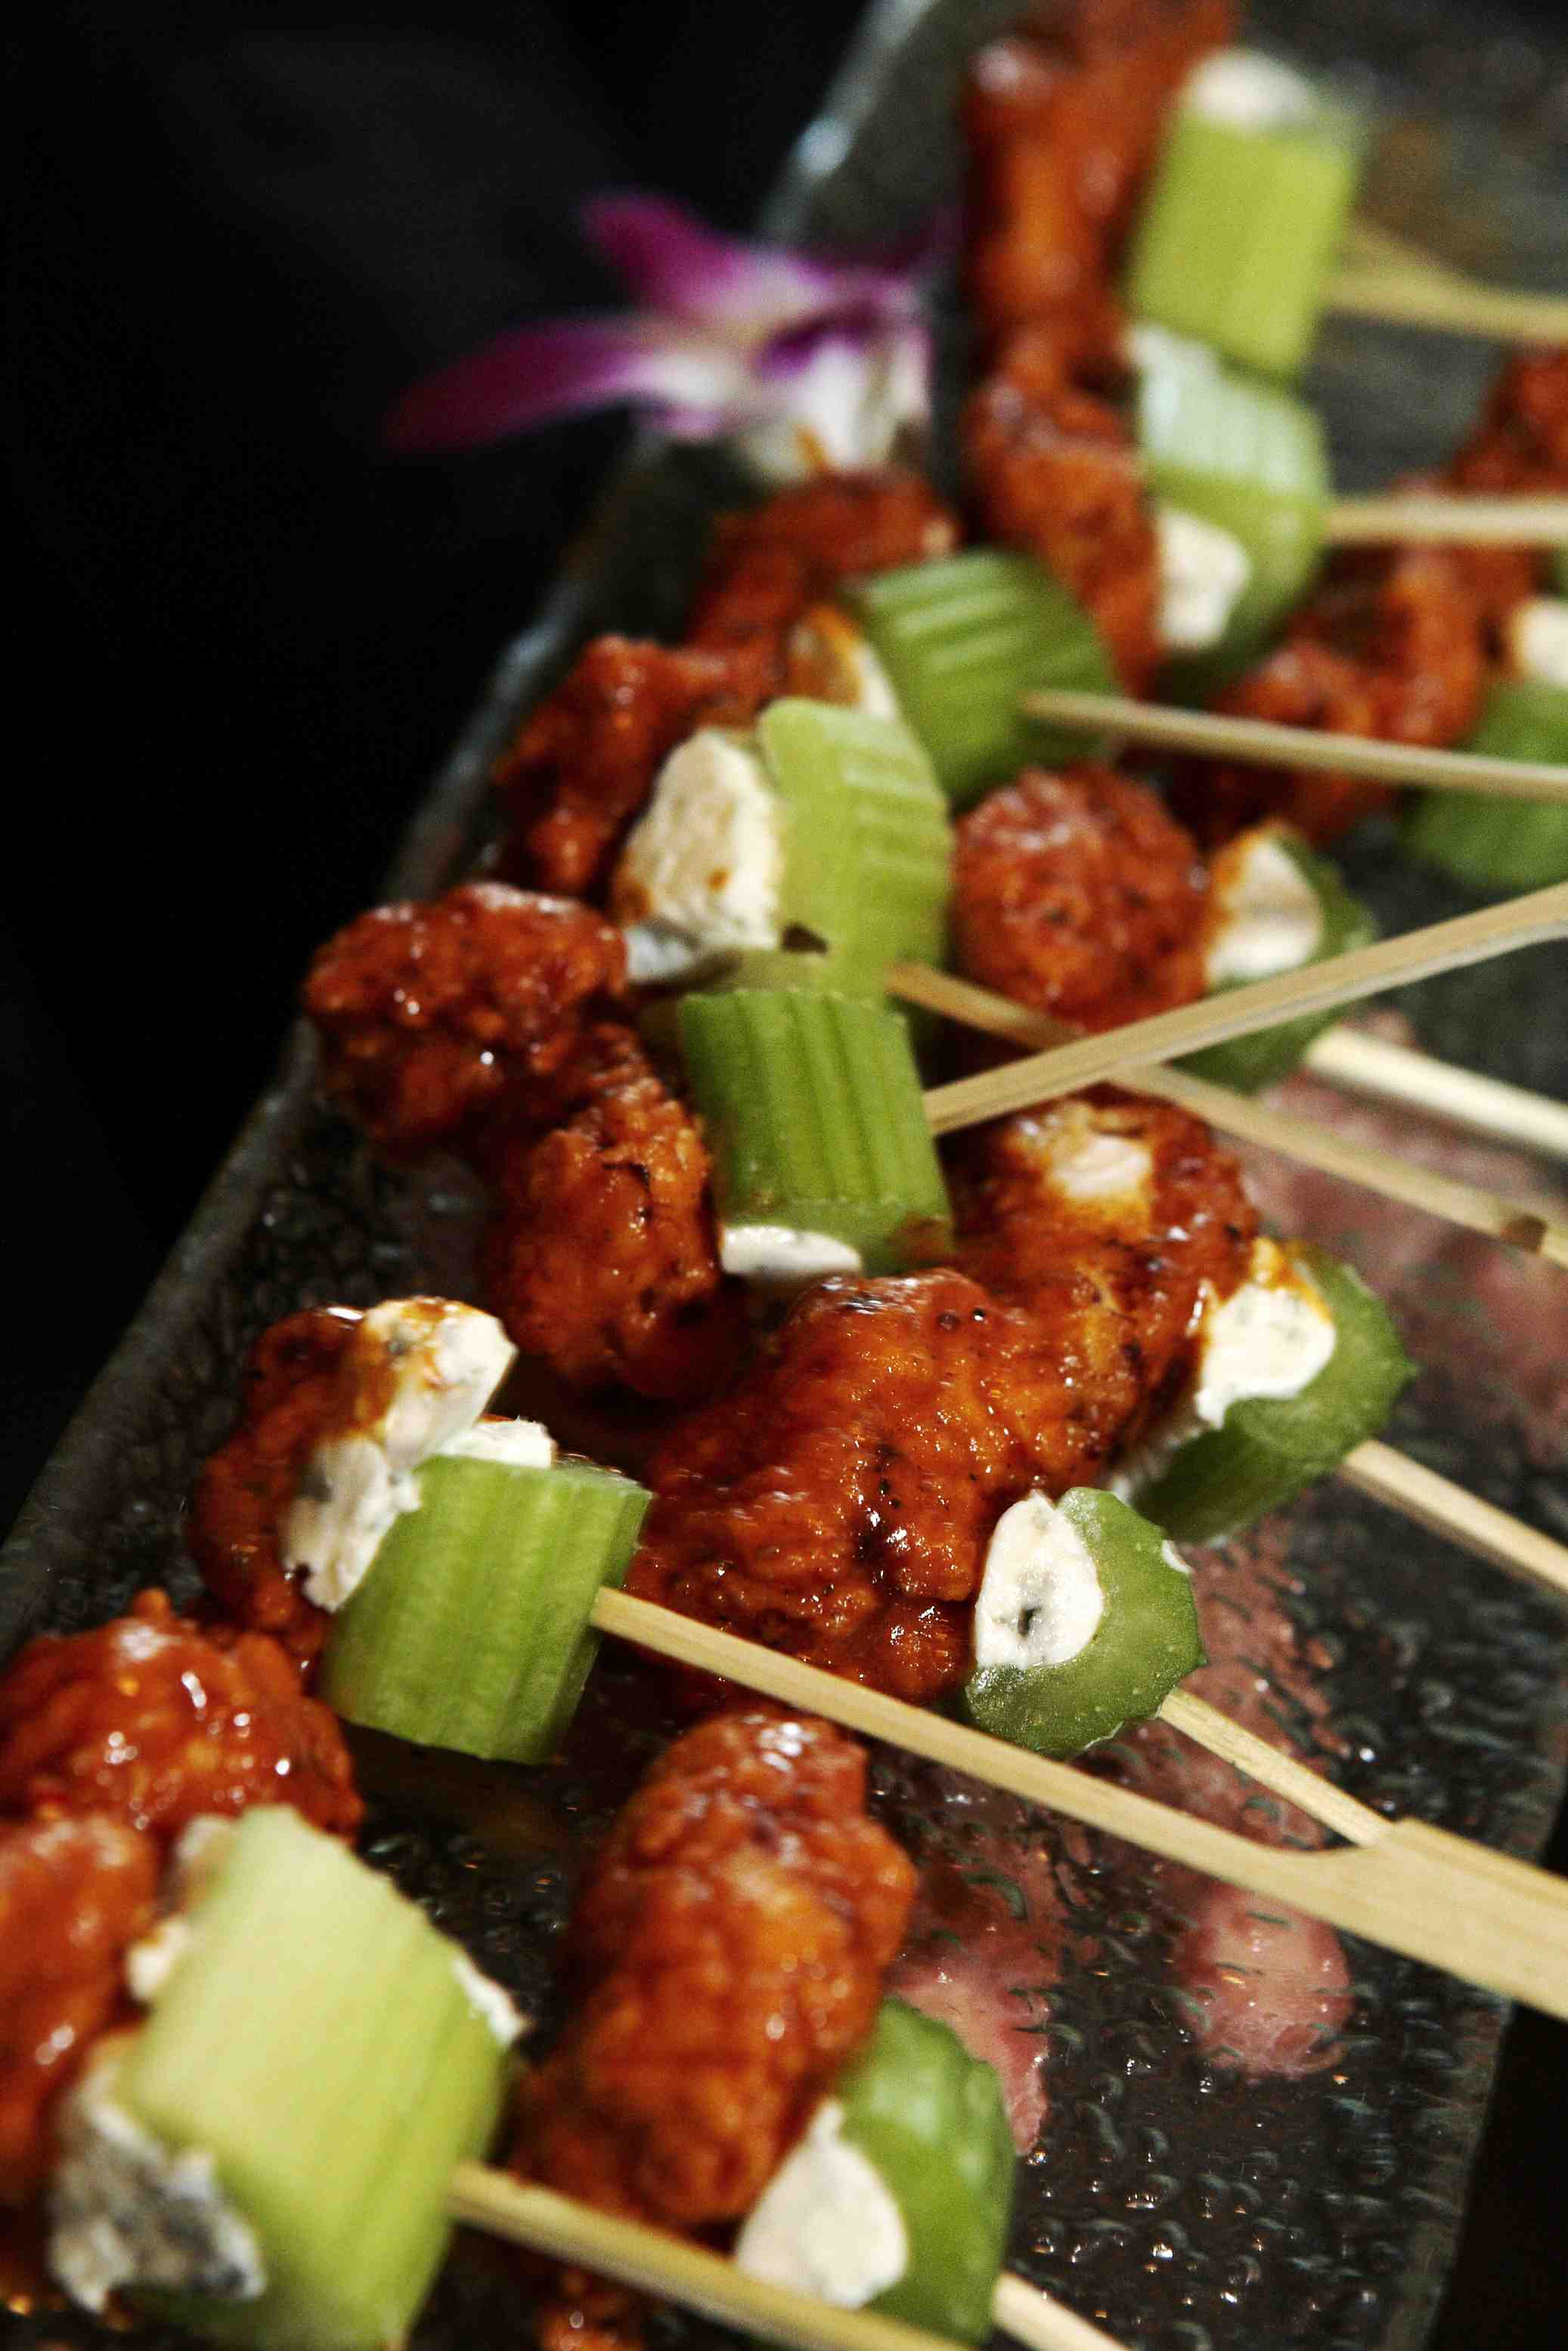 Buffalo wing bites wedding appetizer party entertaining food ideas hors d'oeuvres bleu cheese celery